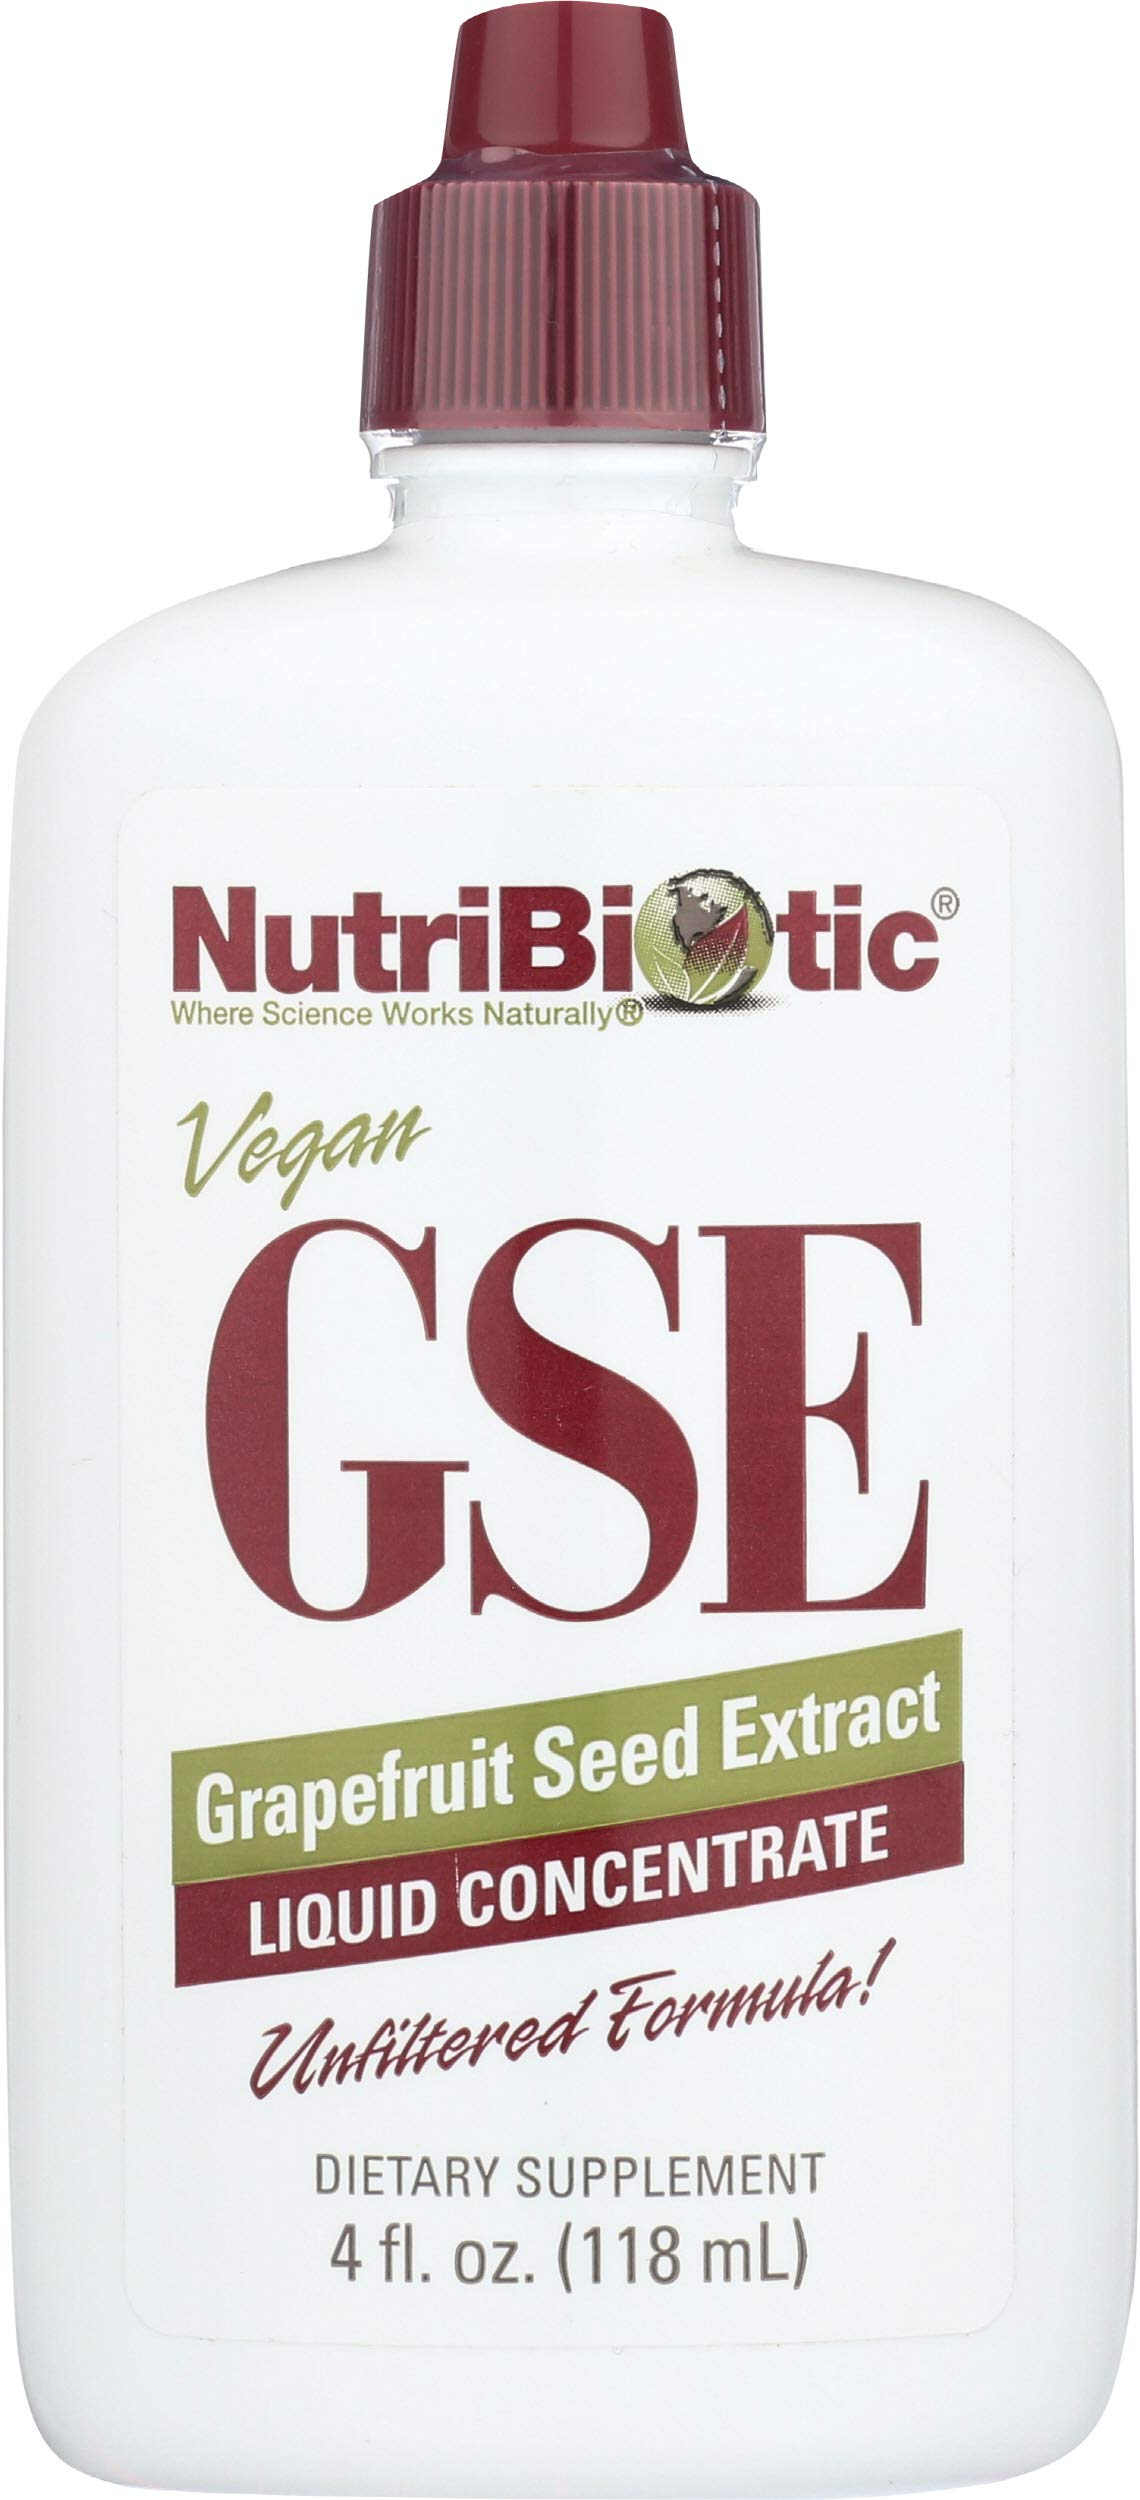 NutriBiotic Grapefruit Seed Extract Liquid Concentrate 4 Fl oz | GSE | Vegan | Potent, High Absorption | Non-GMO | Gluten Free| Dietary Supplement